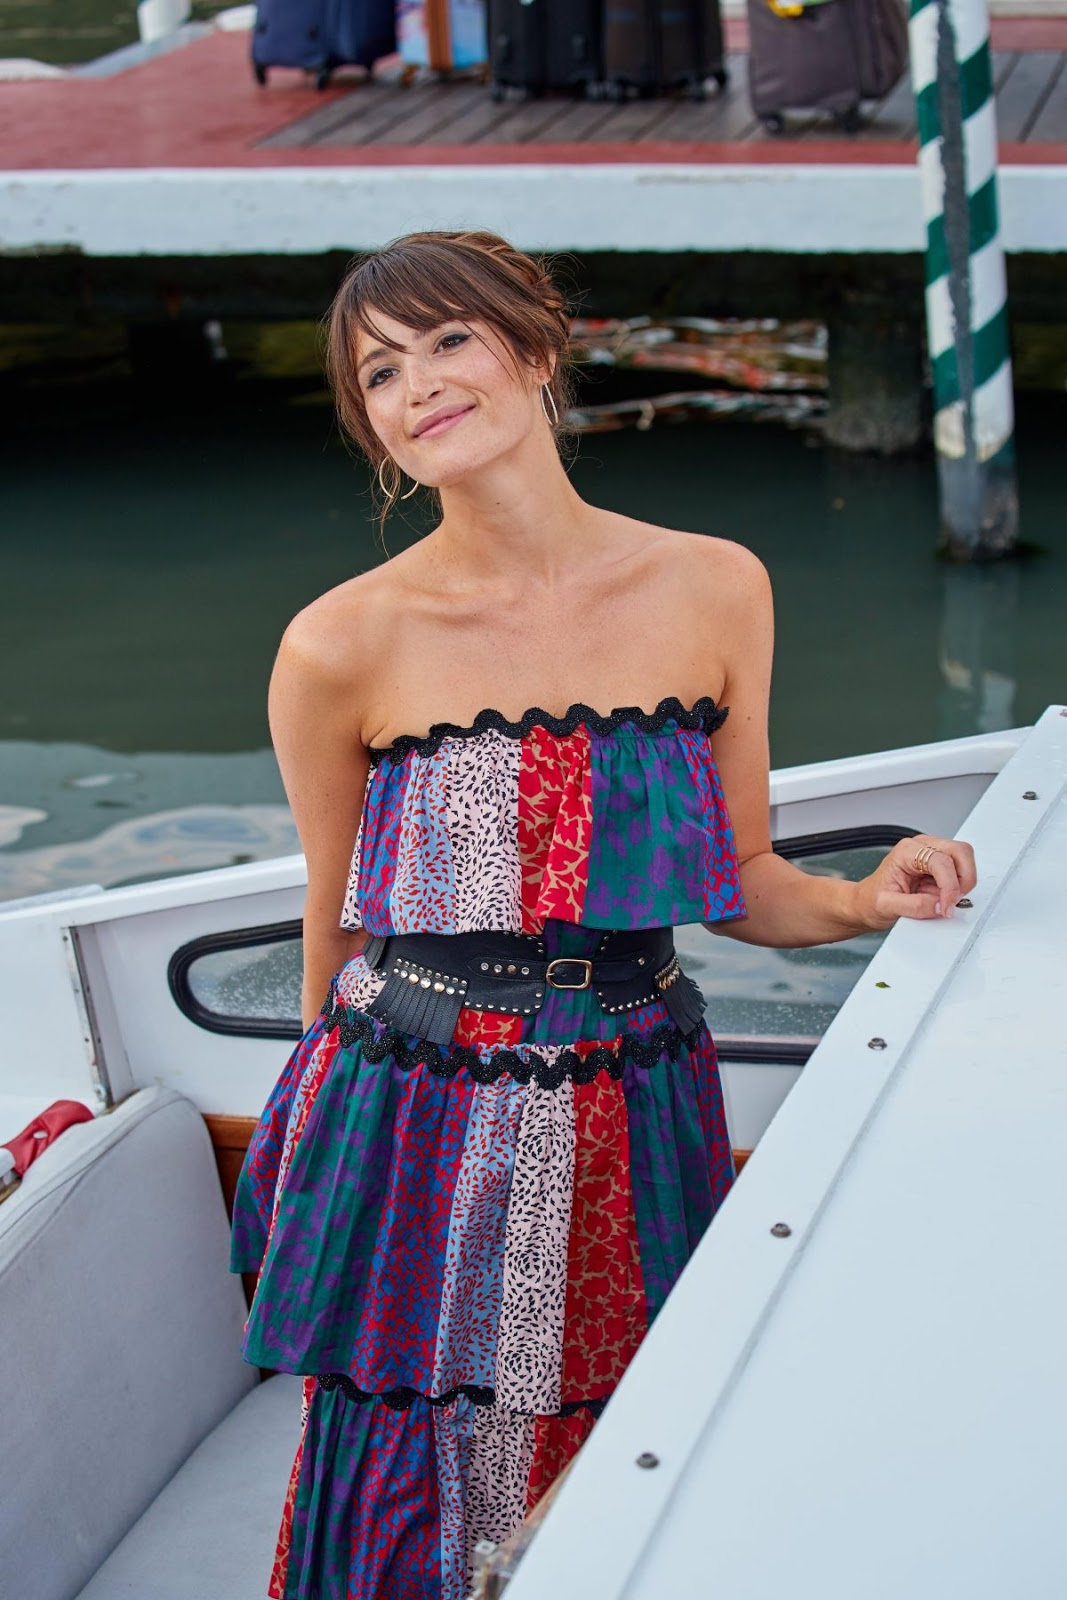 HQ Photos of Gemma Arterton Boarding A Private Water Taxi In Venice